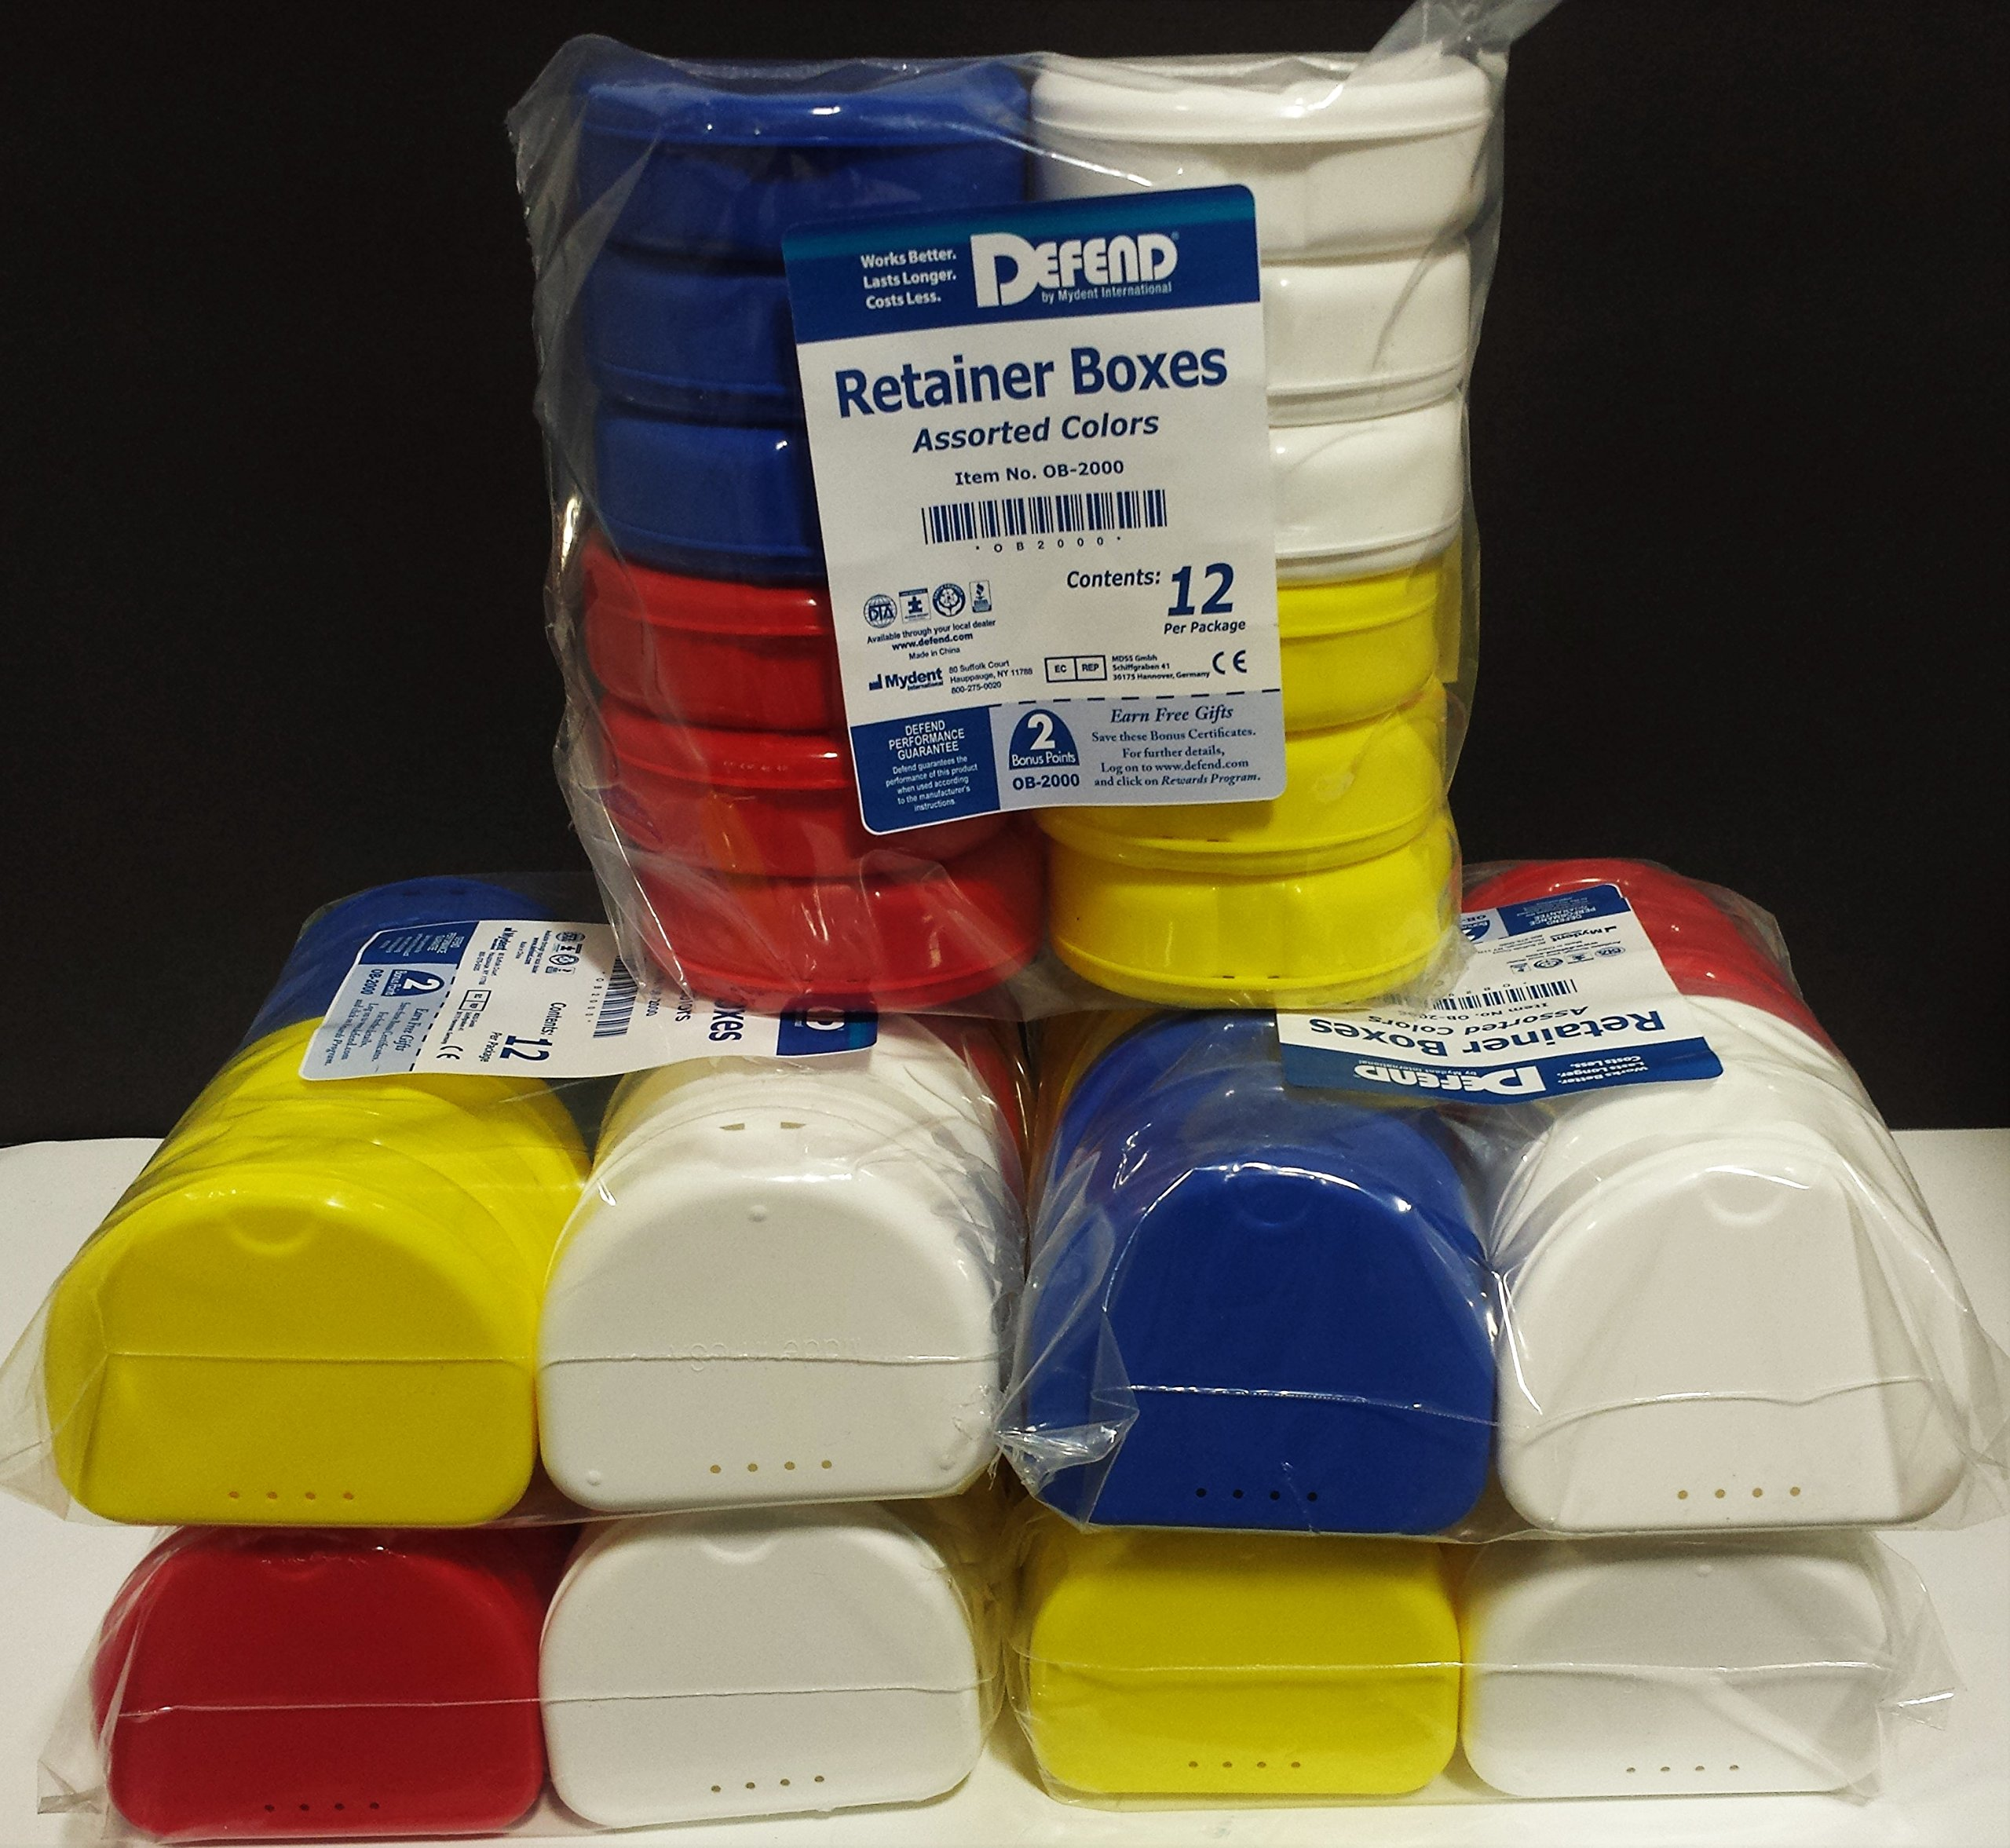 60 Retainer Box Assorted Colors by Defend by DEFEND (Image #1)